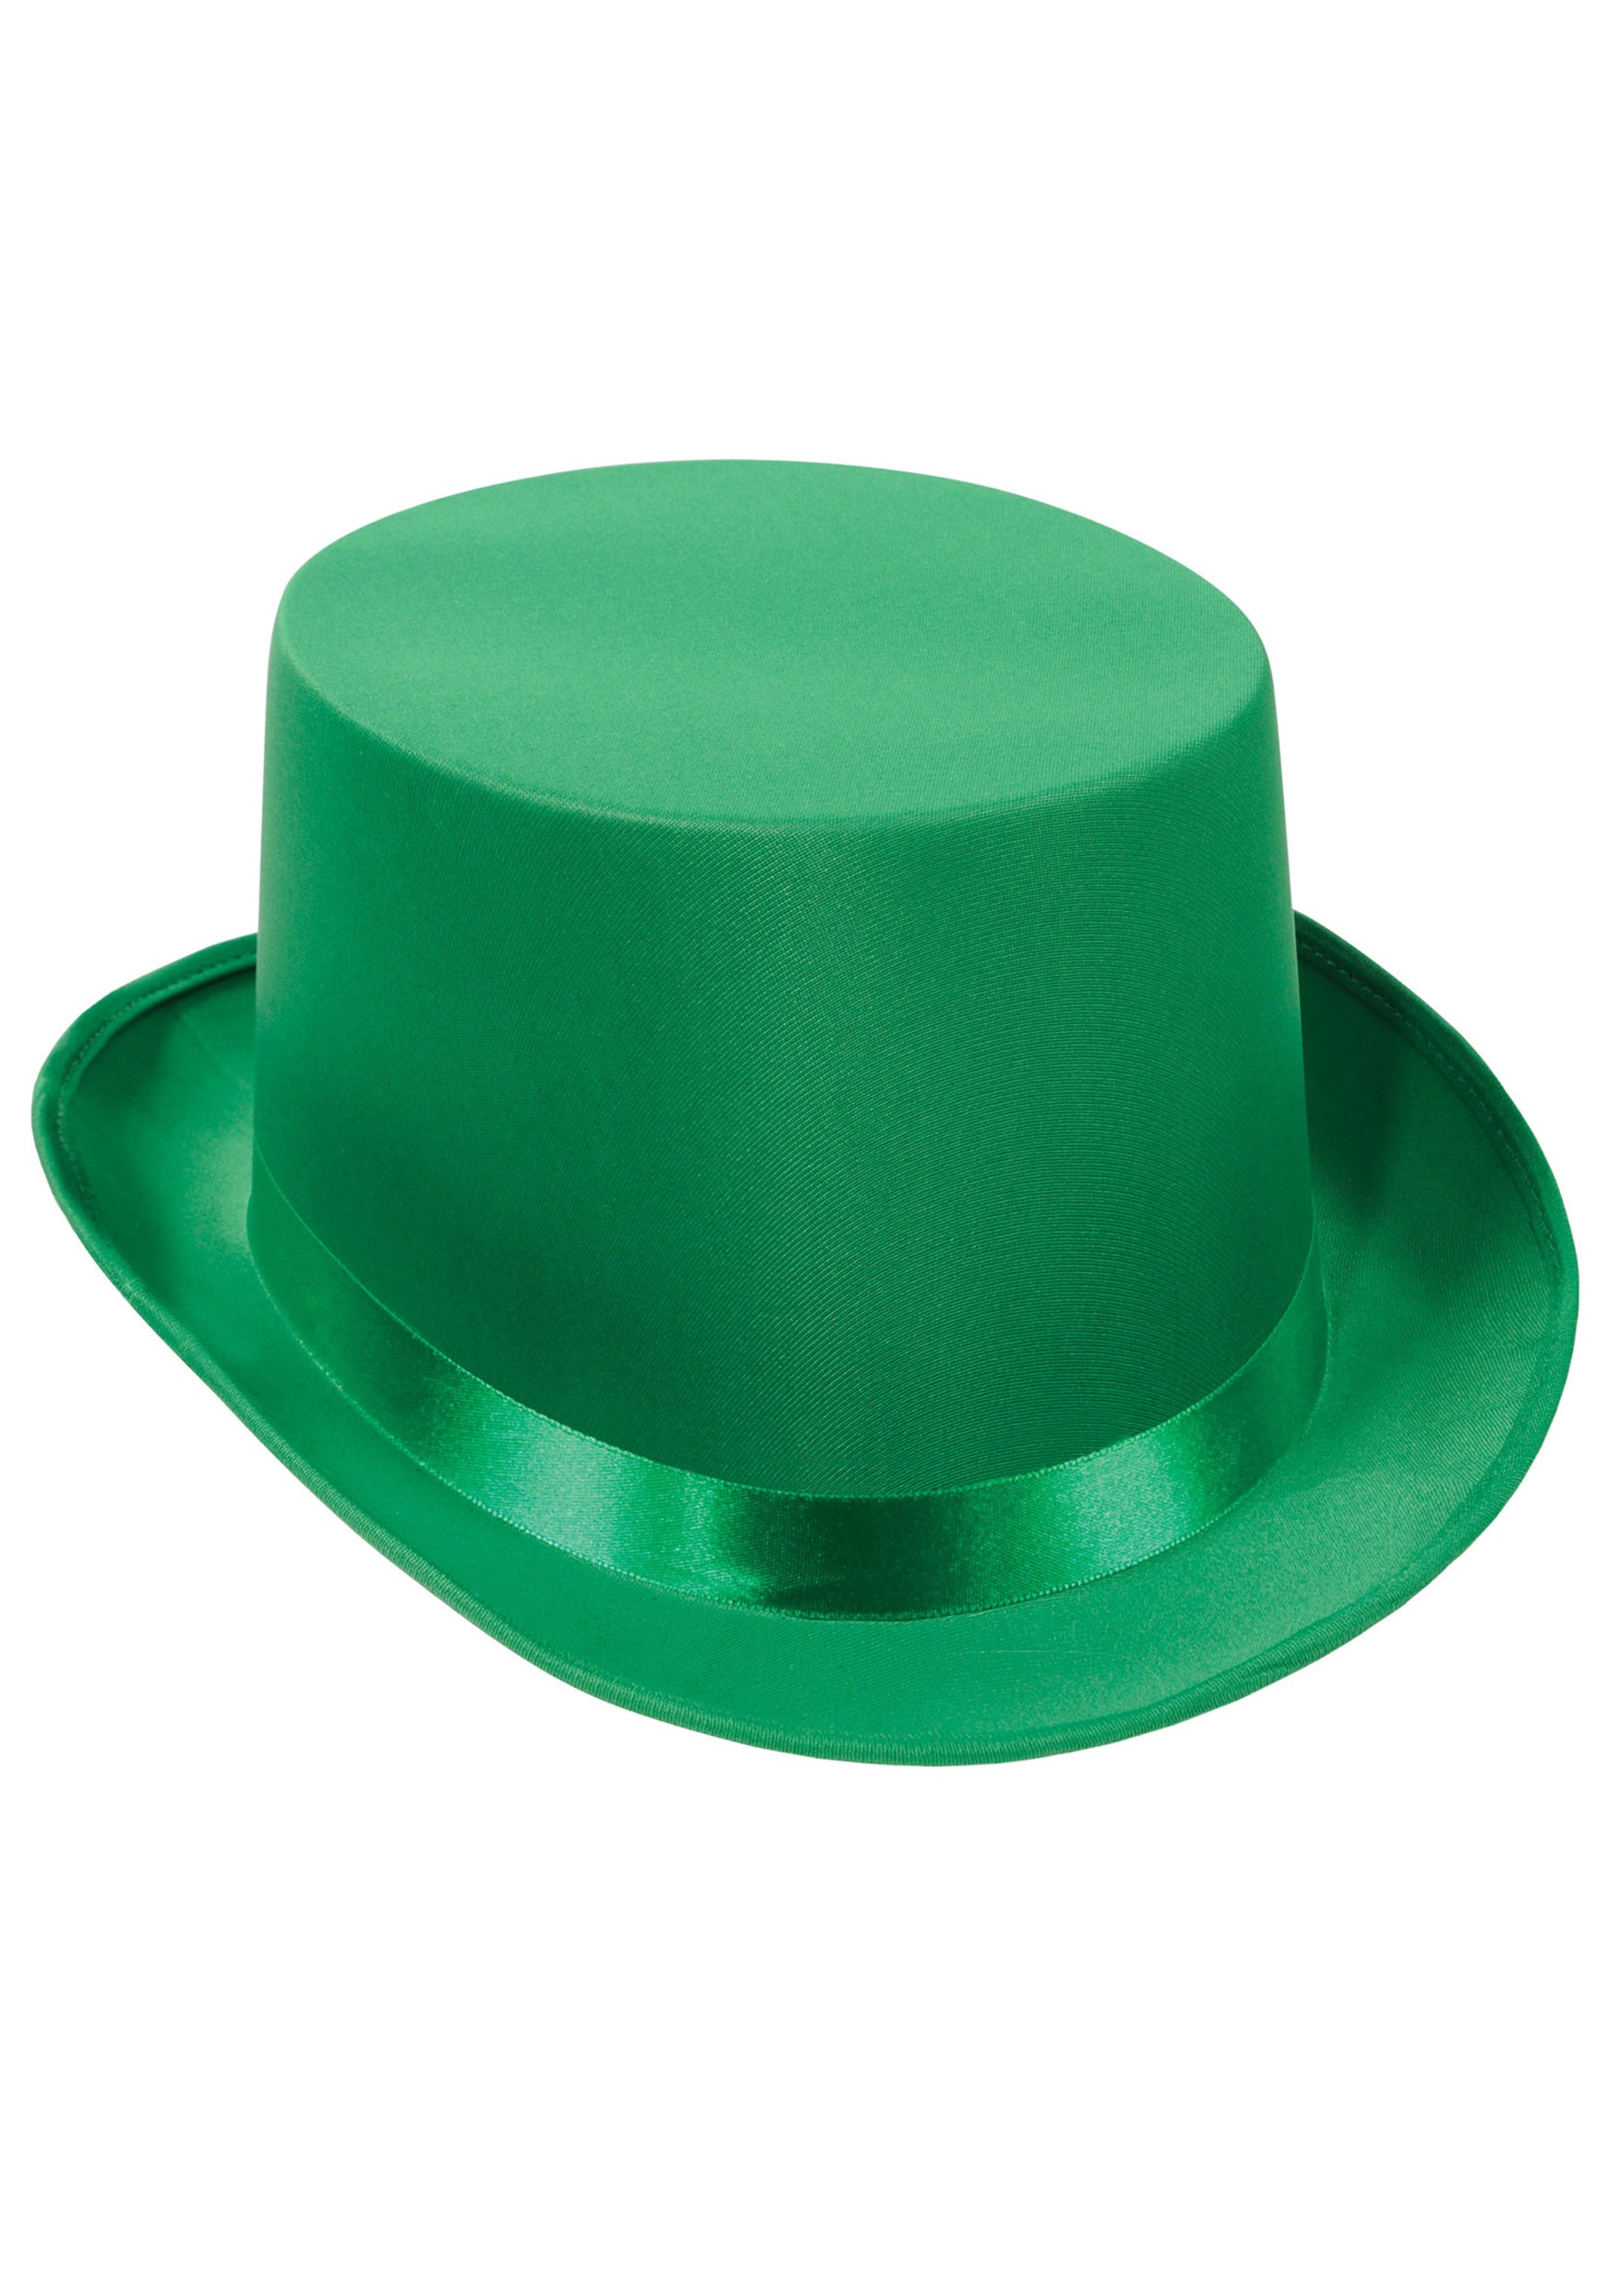 Green_Top_Hat